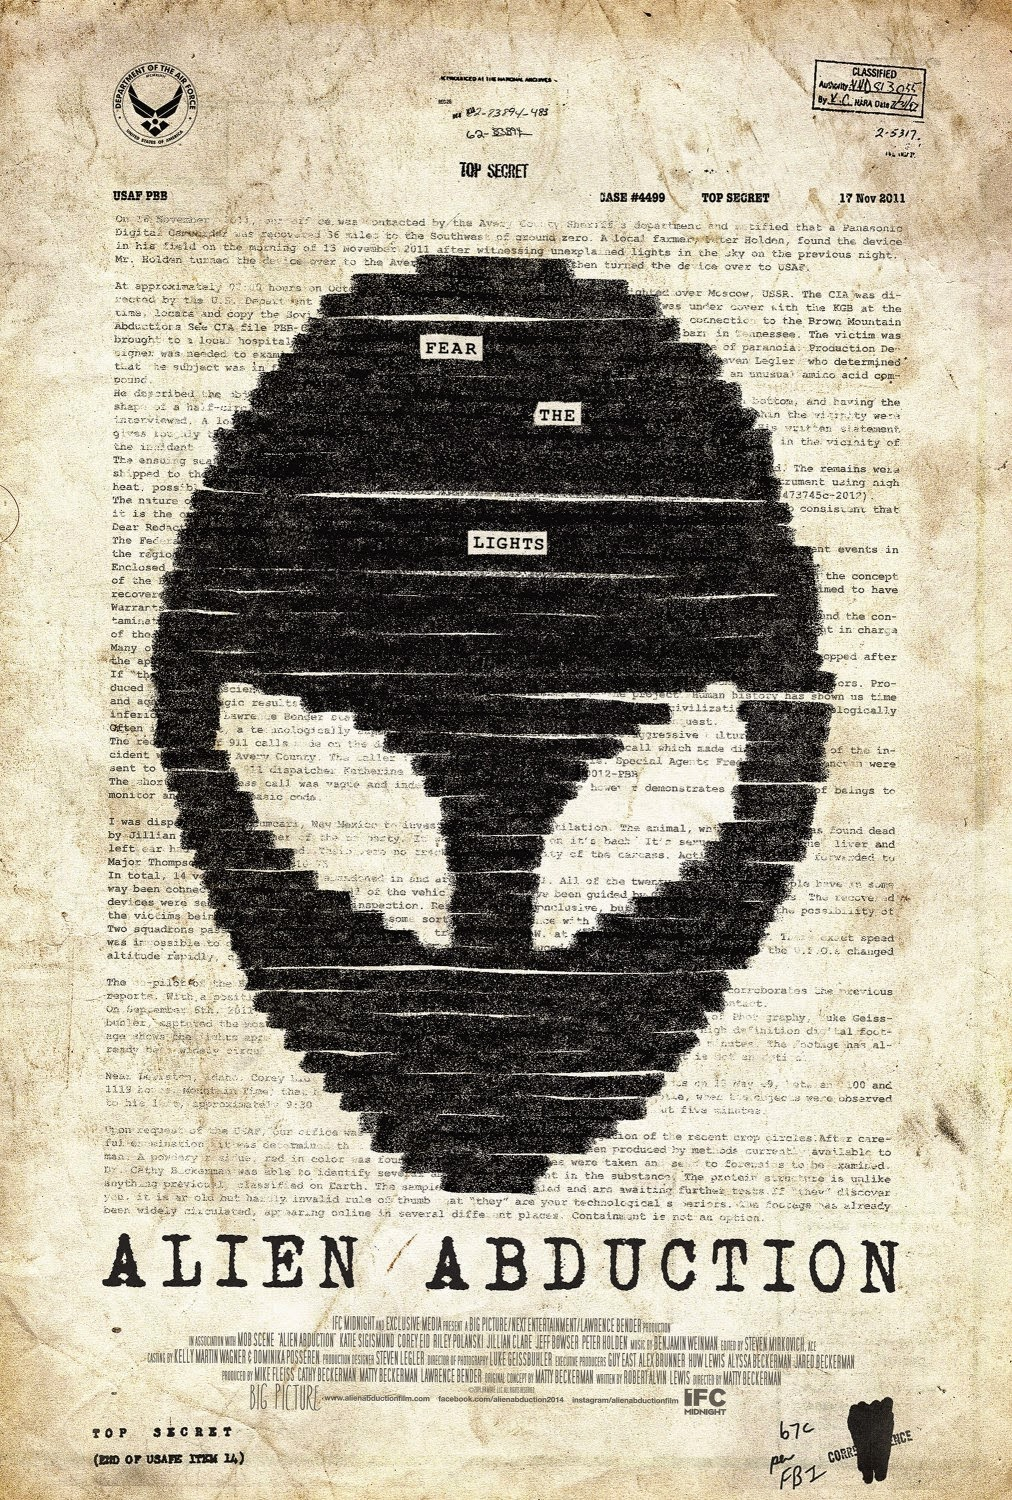 http://horrorsci-fiandmore.blogspot.com/p/alien-abduction-2014.html